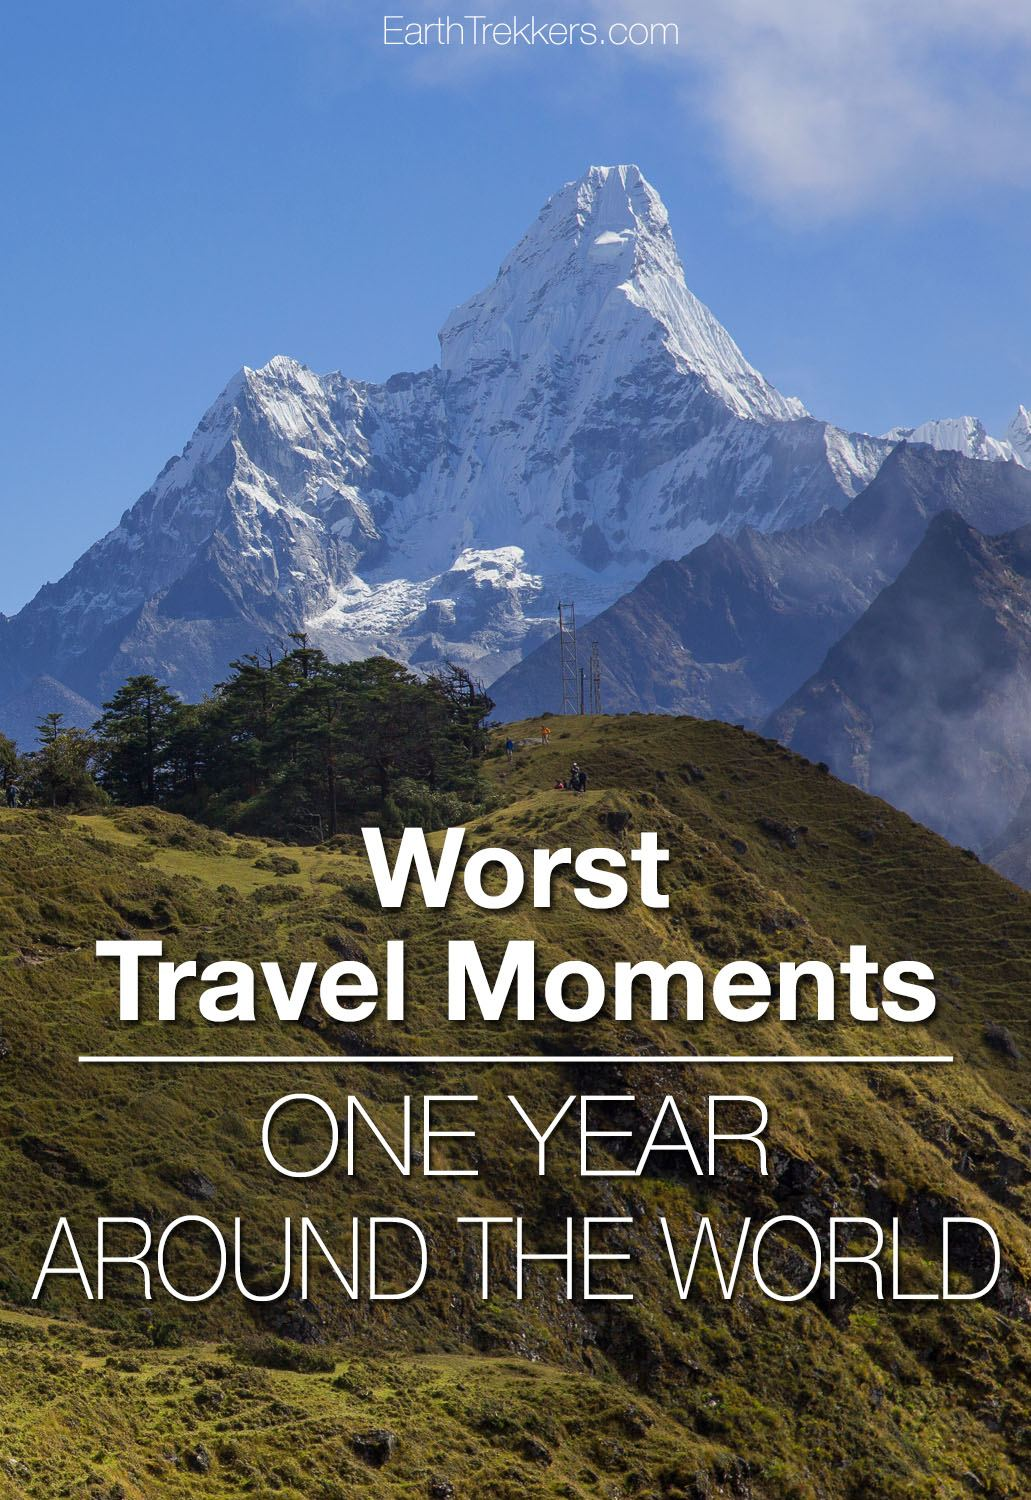 Worst travel moments around the world travel